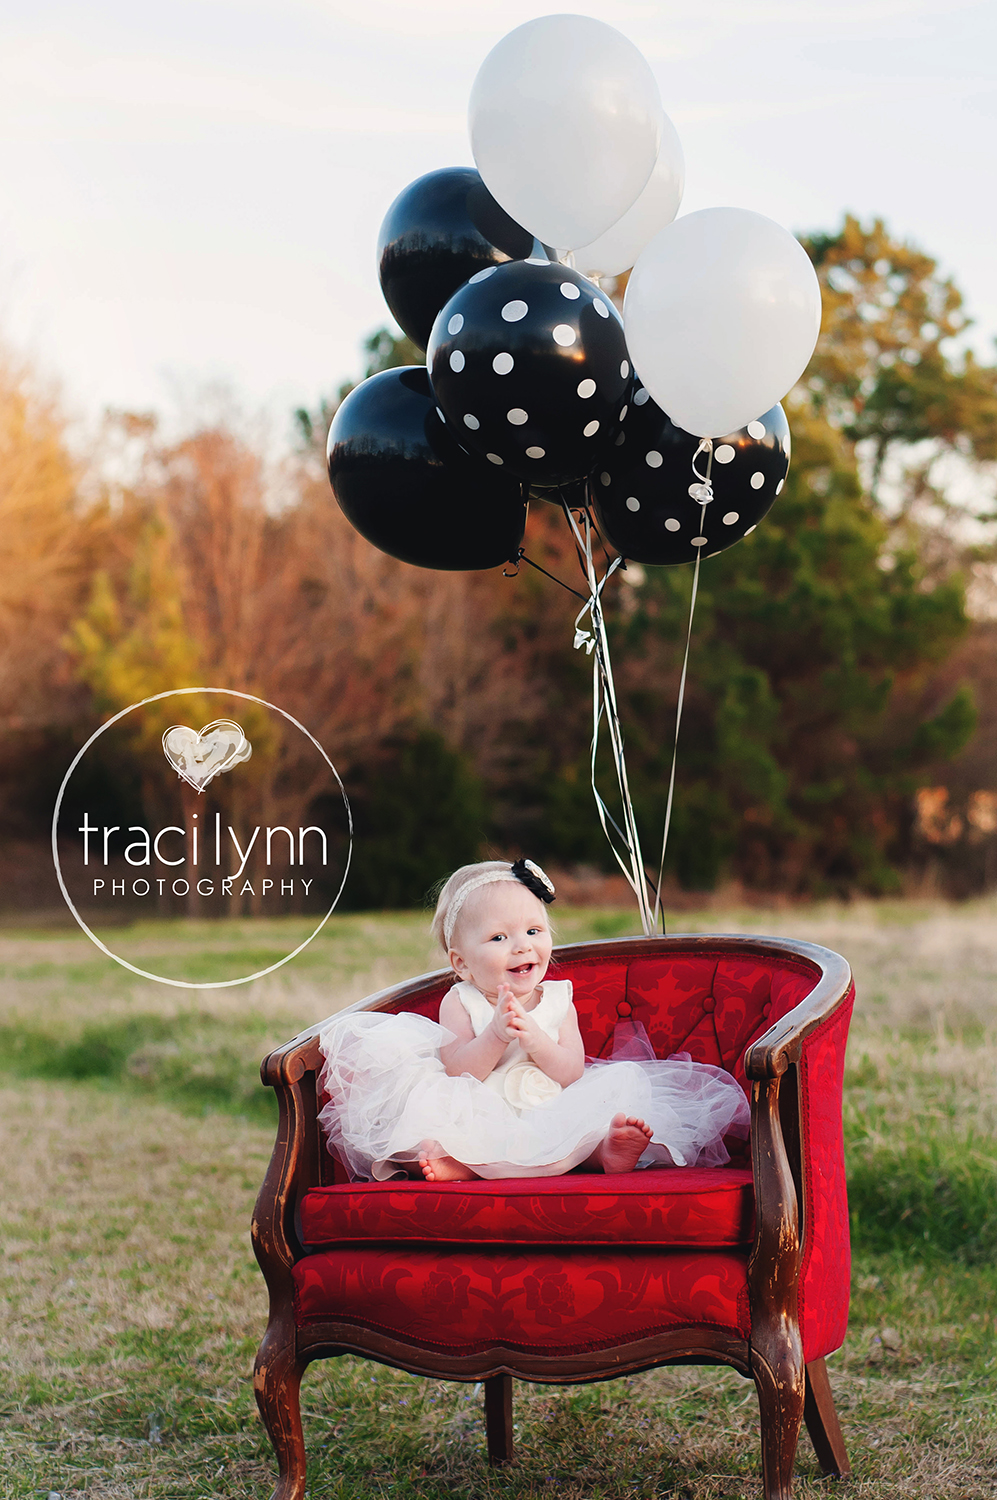 TLP Traci Lynn Photography Seven Points Cedar Creek Lake East Texas Children Wedding Portrait Senior Newborn Birth Story Athens ETMC Photographer Photos Pics Pictures Studio Professional Family (9).jpg